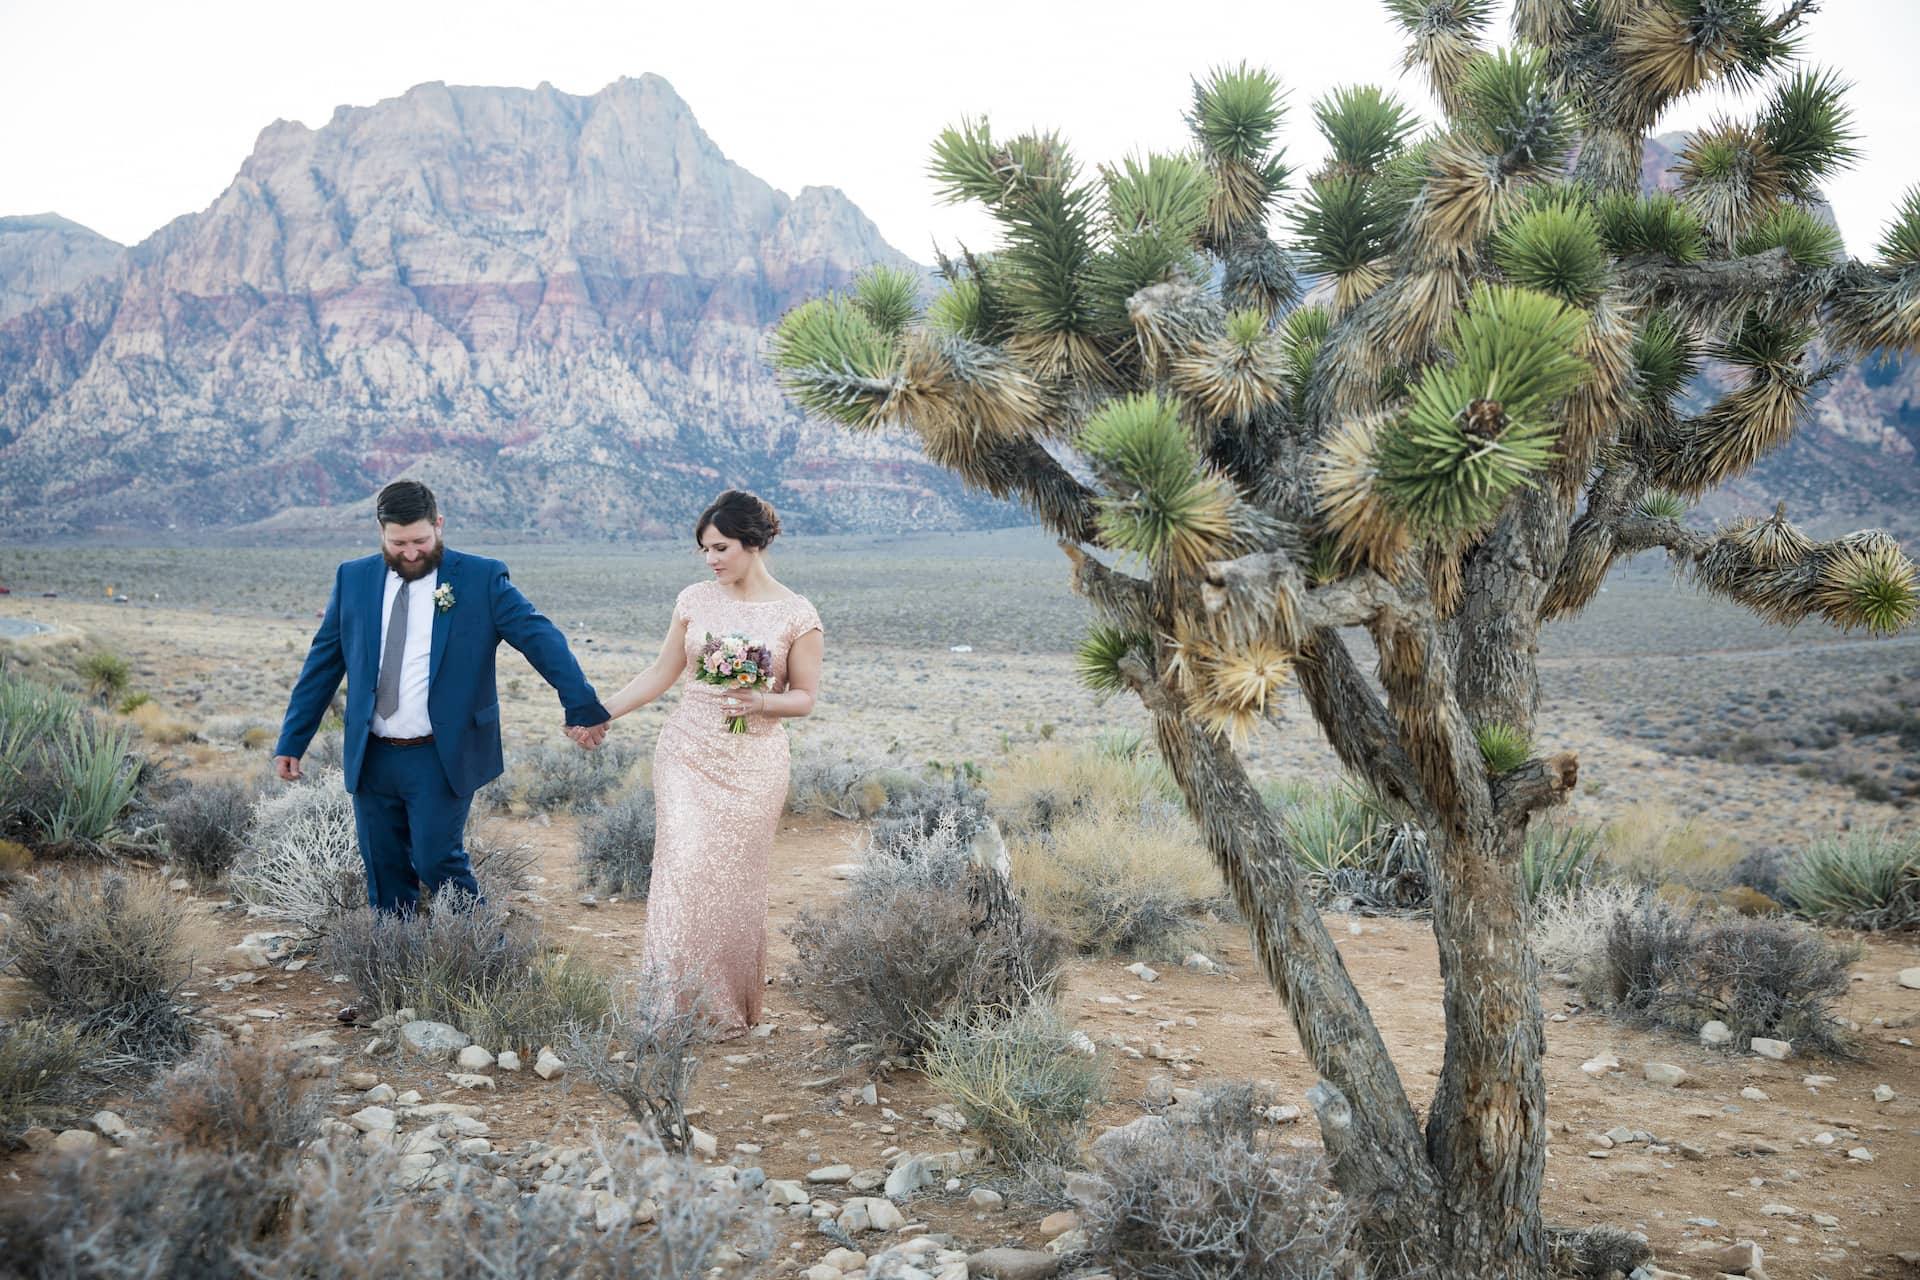 Beth + Derek eloping in the desert in Las Vegas.